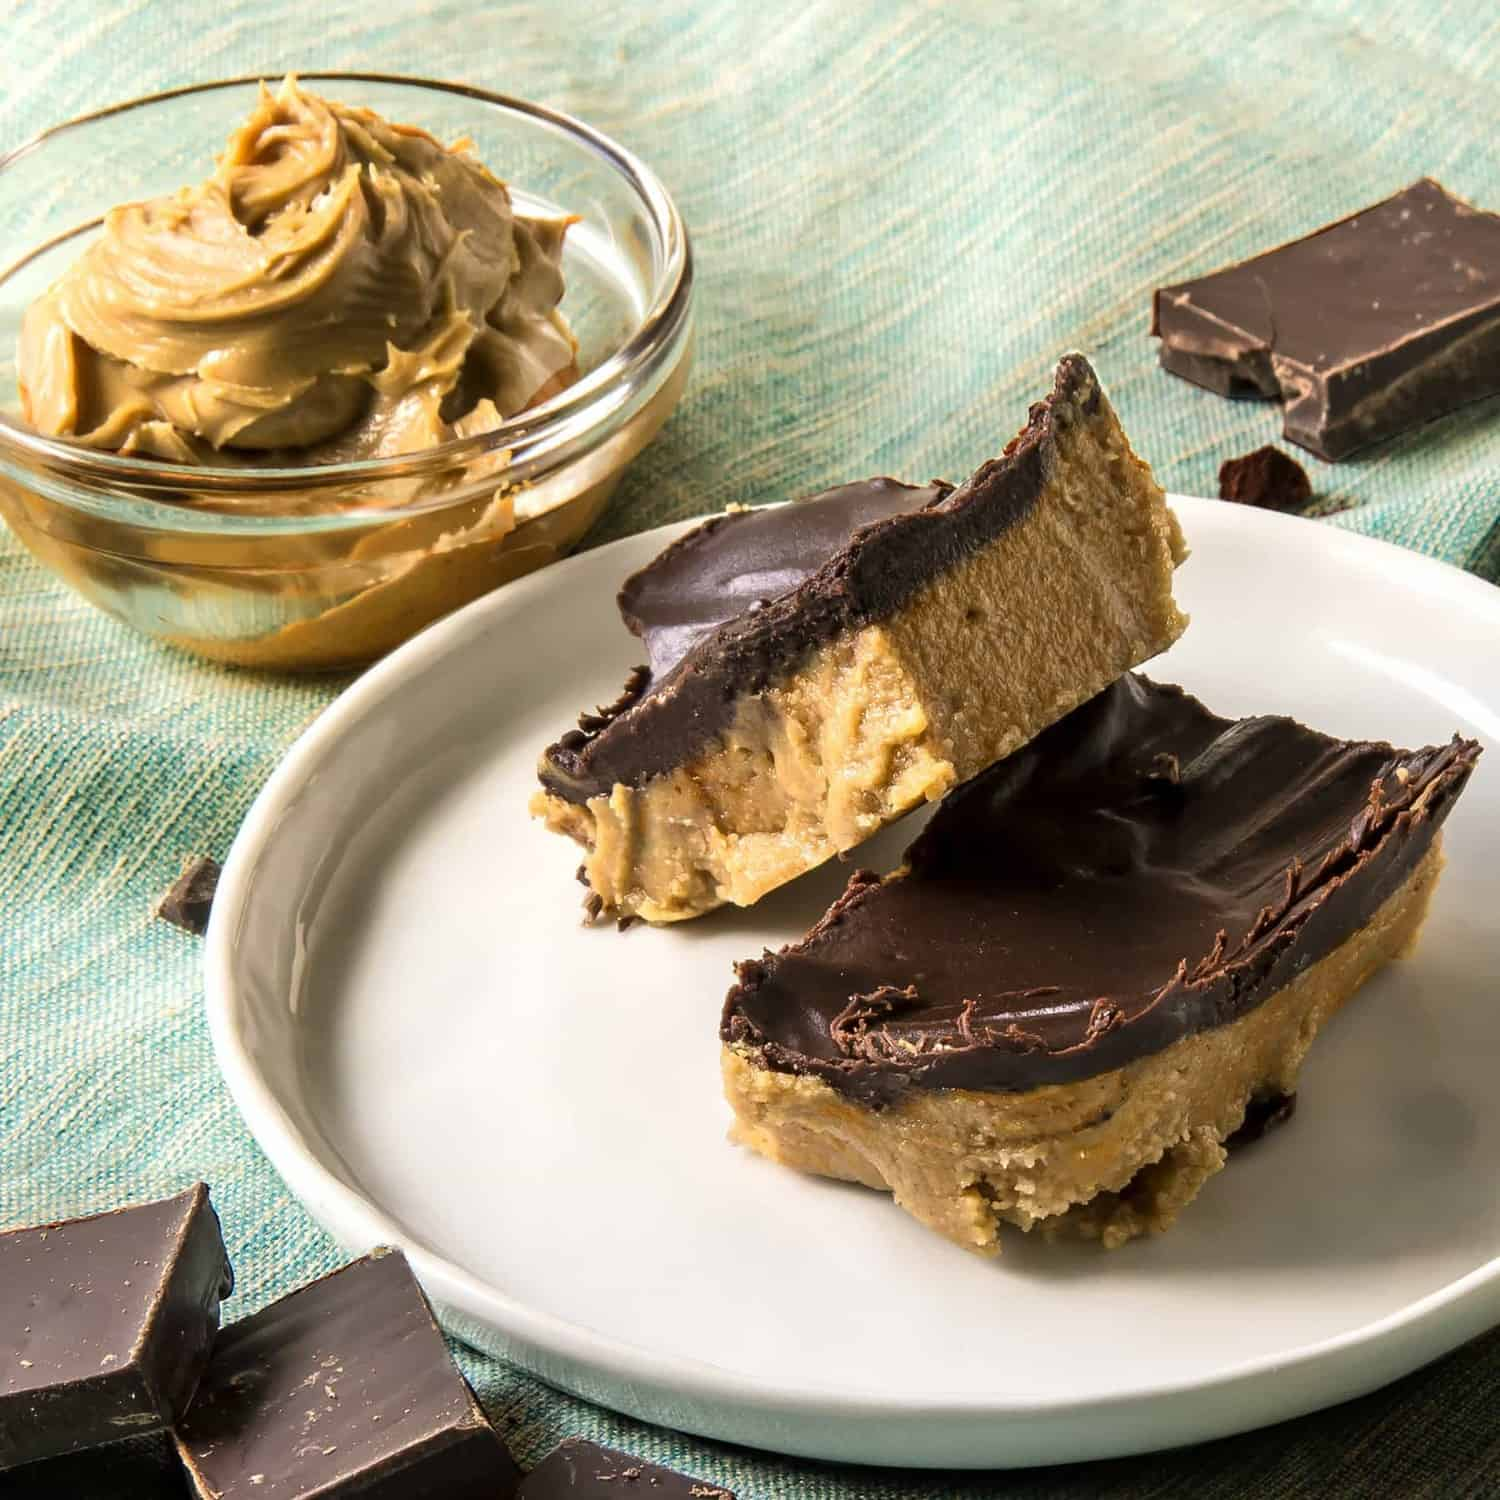 11 of the best low carb keto dessert recipes that are also super easy to make - No Bake Keto Peanut Butter Chocolate Bars